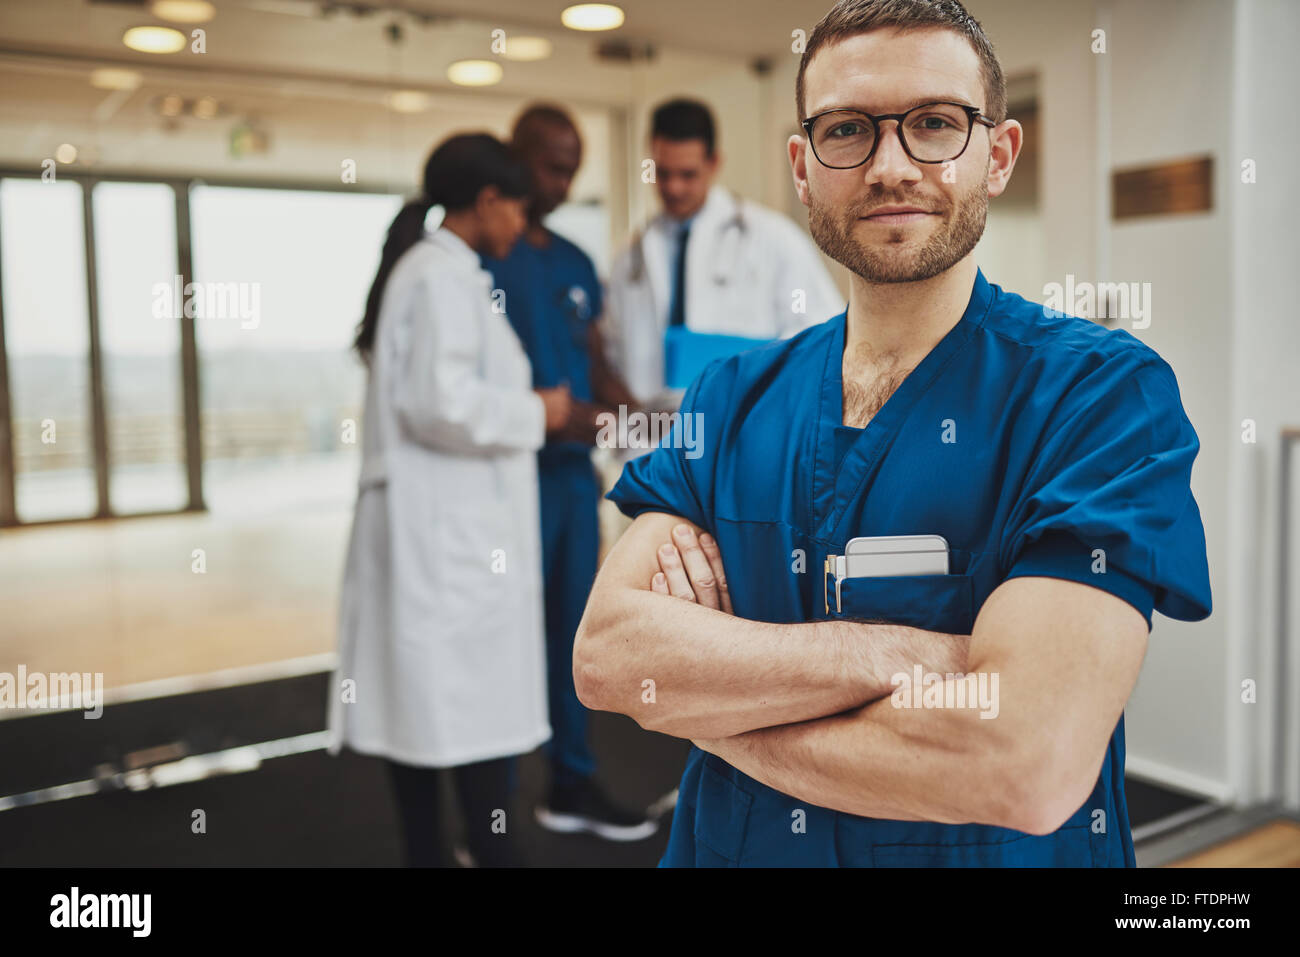 Confident relaxed surgeon doctor at hospital with team of doctors in background - Stock Image